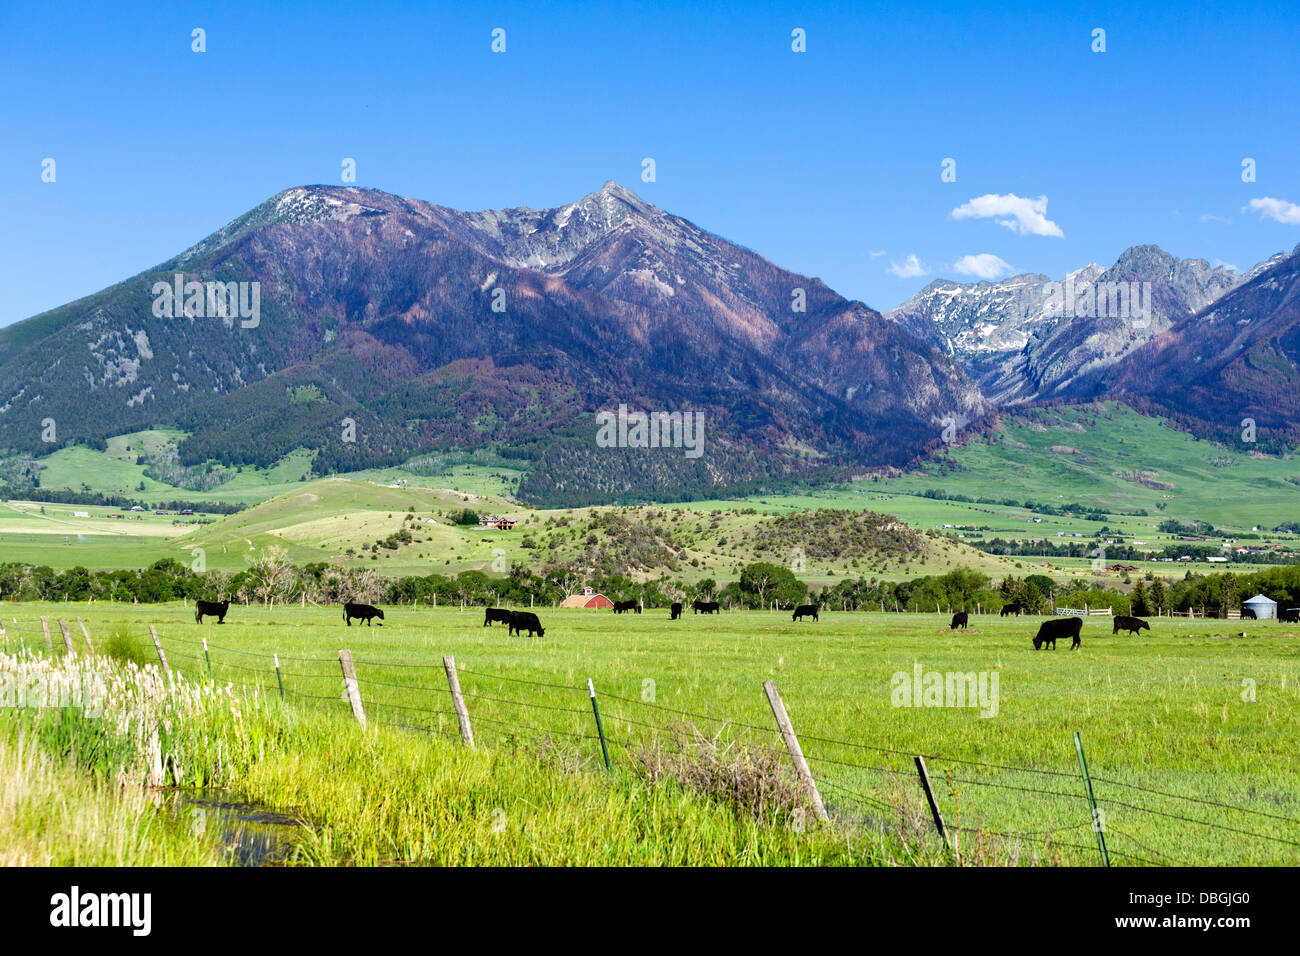 Cattle ranch south of Livingstone, Montana, USA - Stock Image